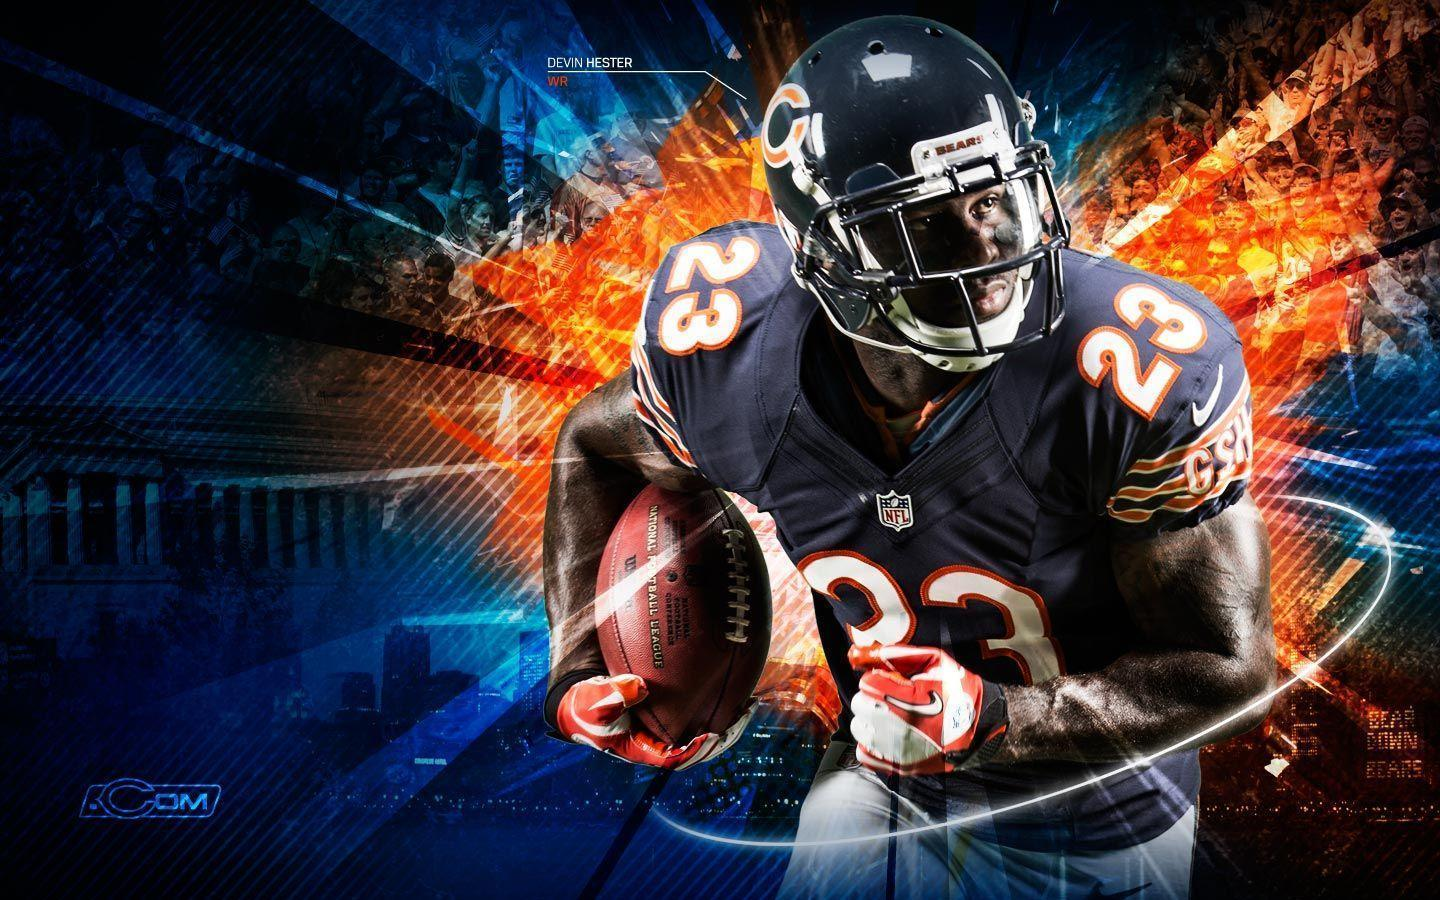 Cool Pics Of Nfl Players: NFL Players Wallpapers